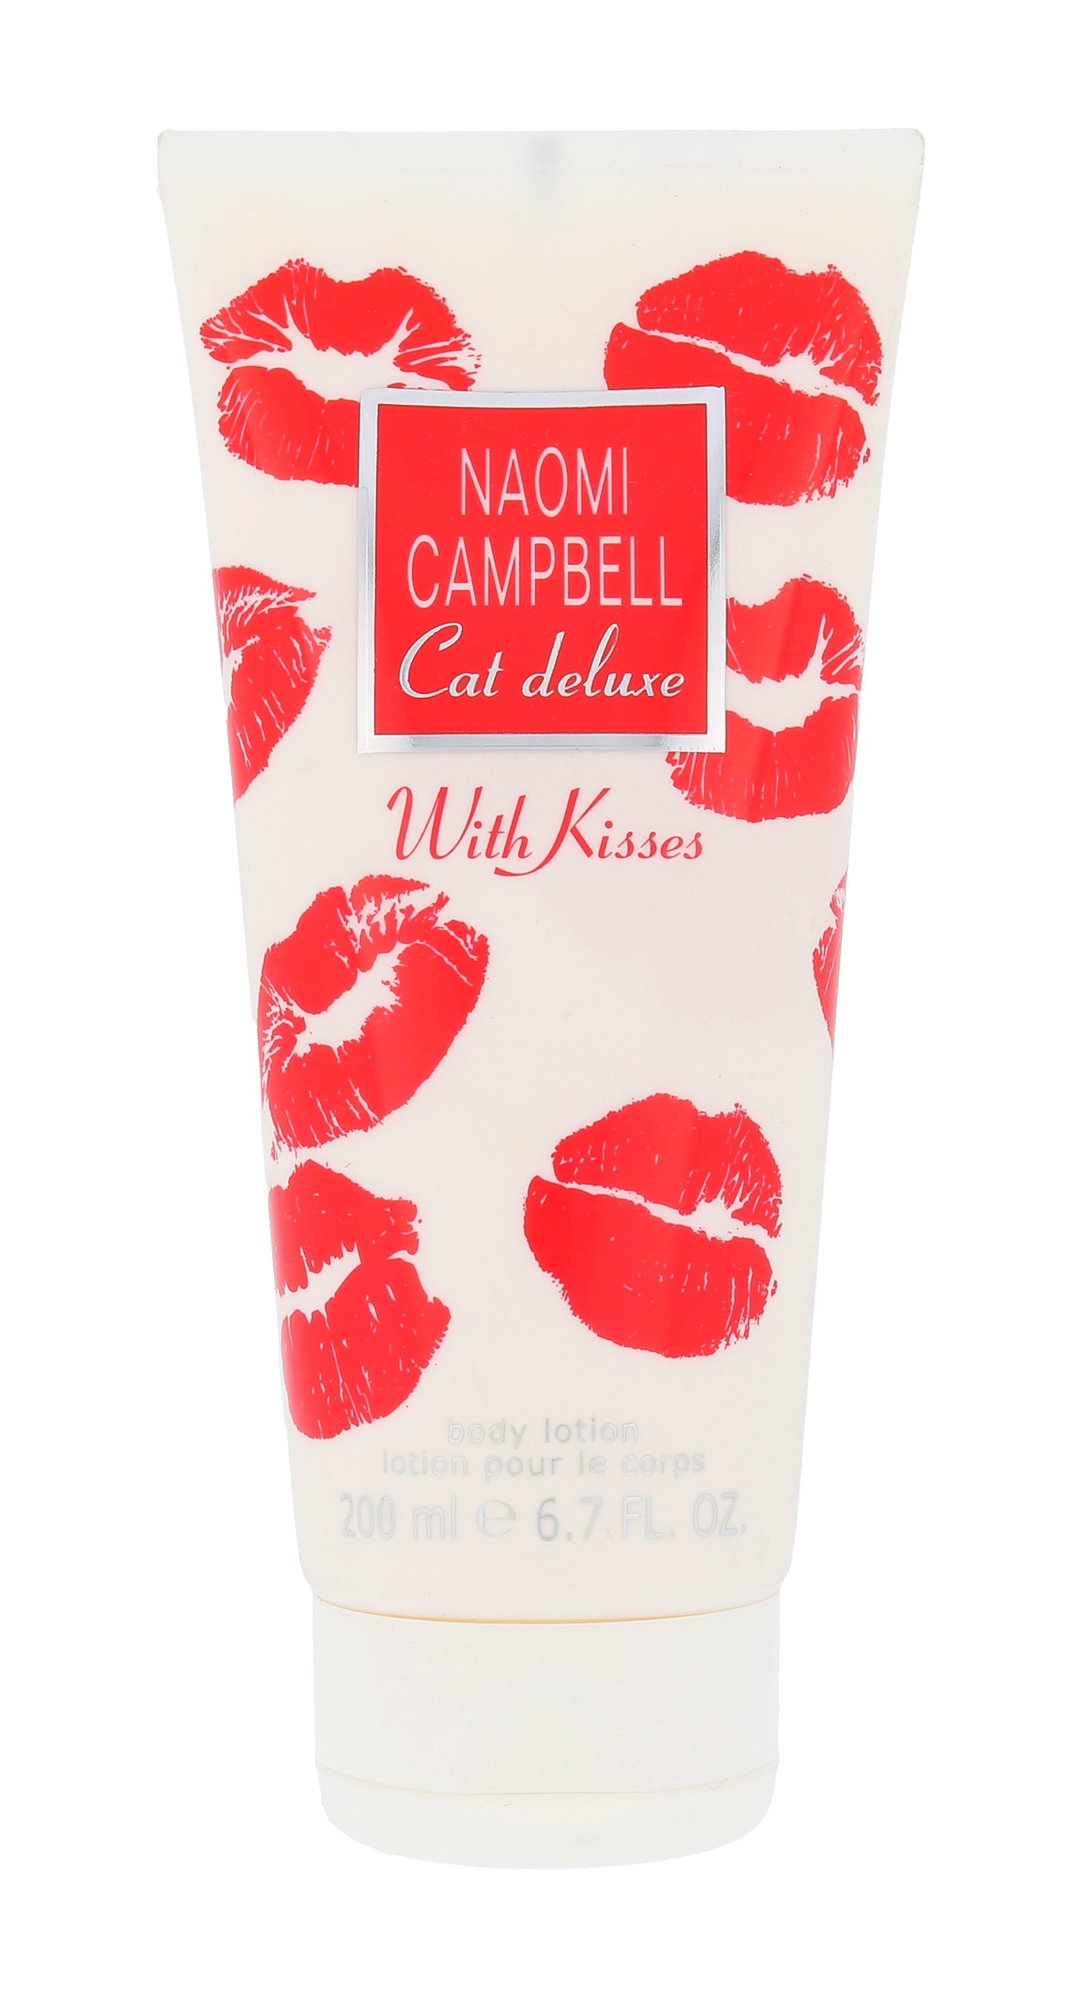 Naomi Campbell Cat Deluxe With Kisses Body lotion 200ml